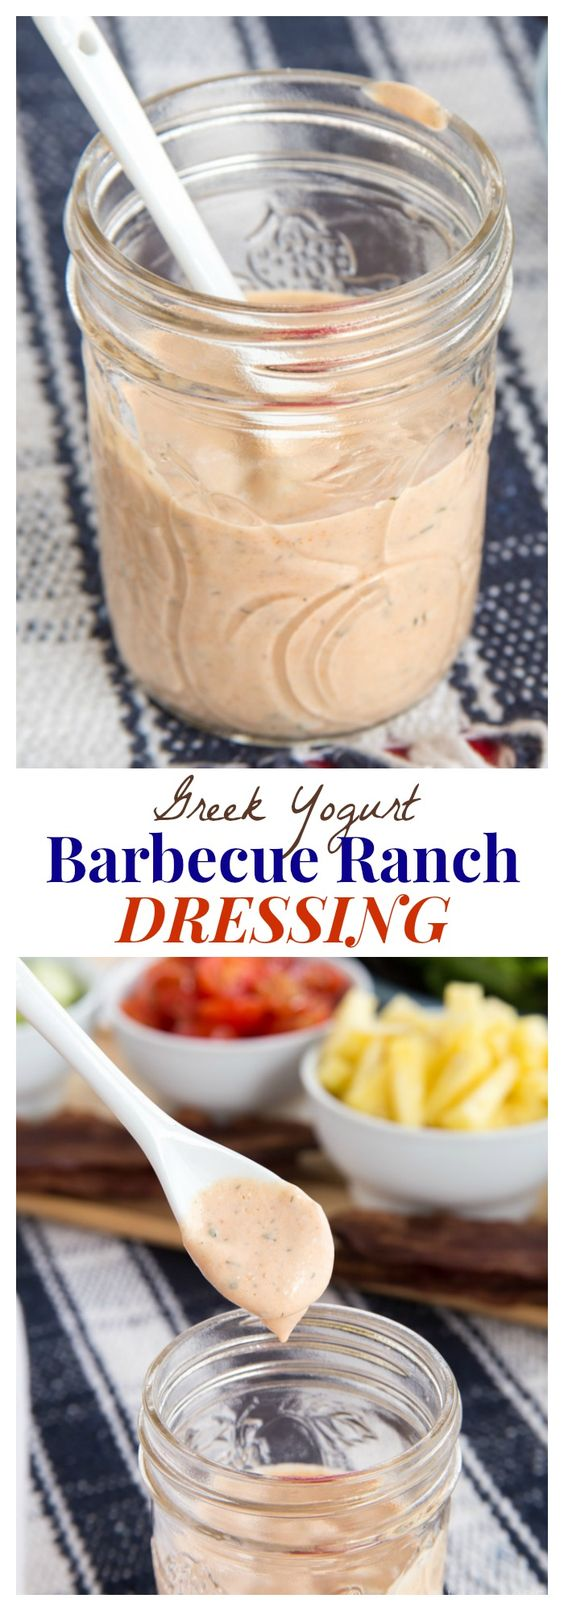 Greek Yogurt Barbecue Ranch Dressing - you just need basic ingredients to put a healthy and tangy twist on the classic Ranch salad dressing recipe for dipping veggies or drizzling over salads. | cupcakesandkalechips.com | gluten free, low carb recipe